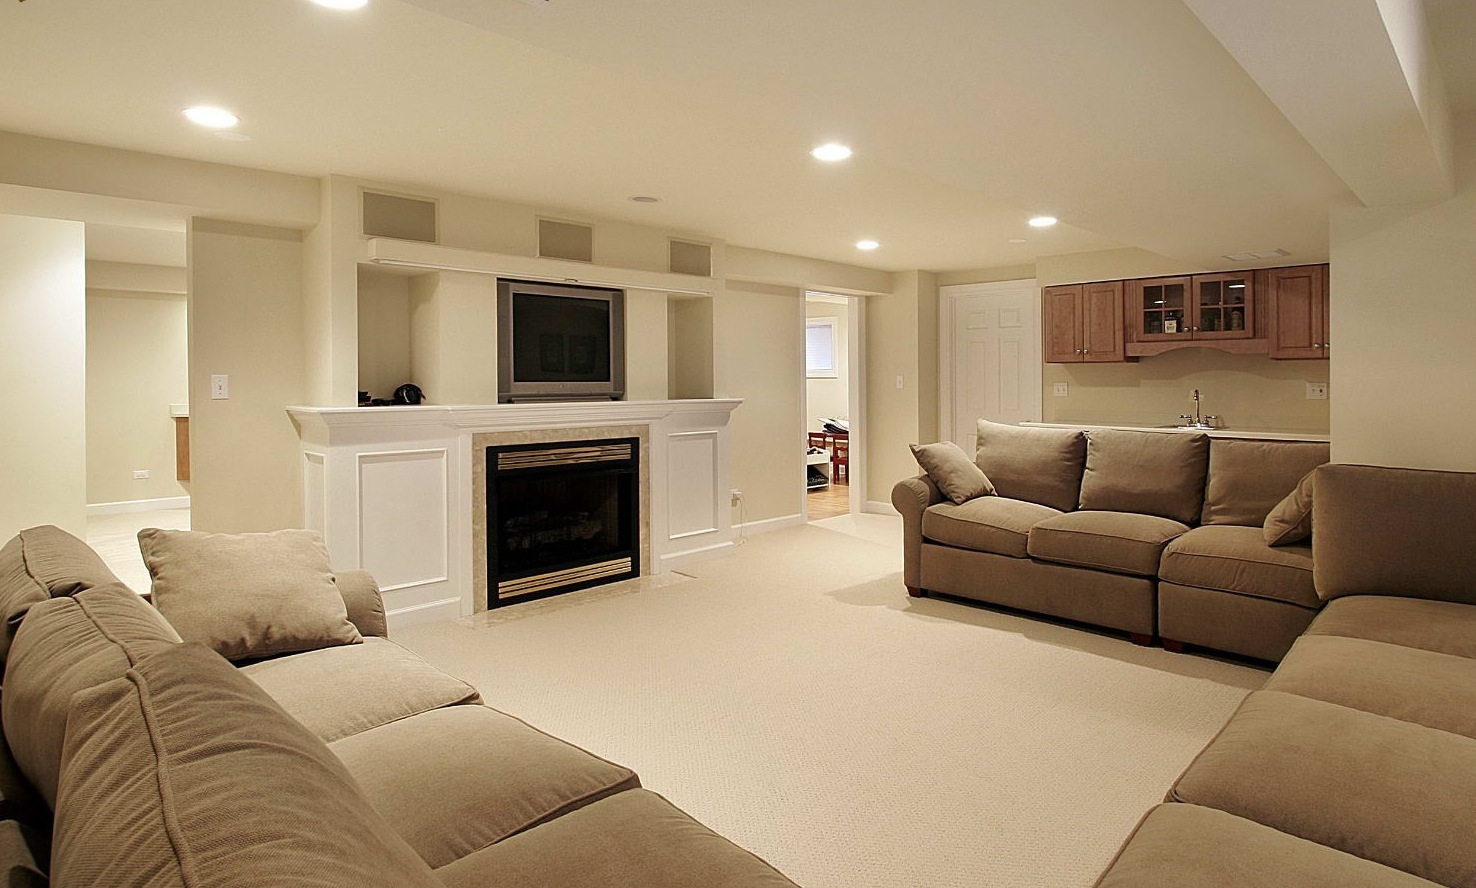 Remodeling Basement Ideas Fair 30 Basement Remodeling Ideas & Inspiration Decorating Design